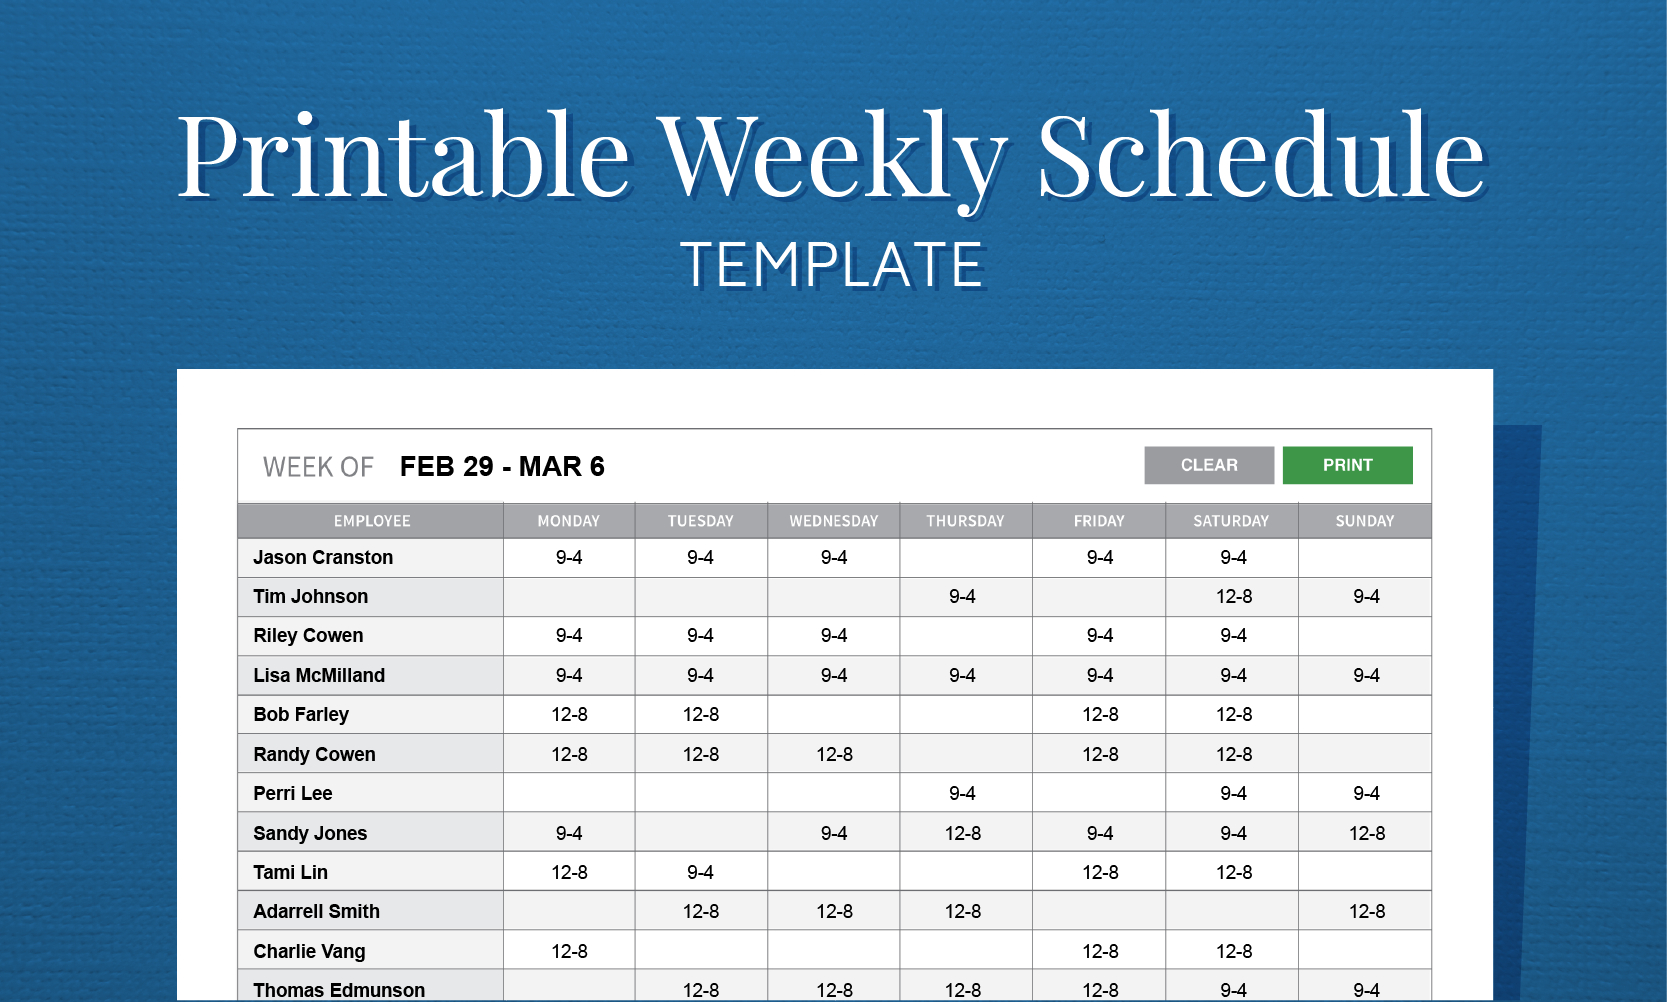 Free Printable Weekly Work Schedule Template For Employee Scheduling - Free Printable Weekly Work Schedule